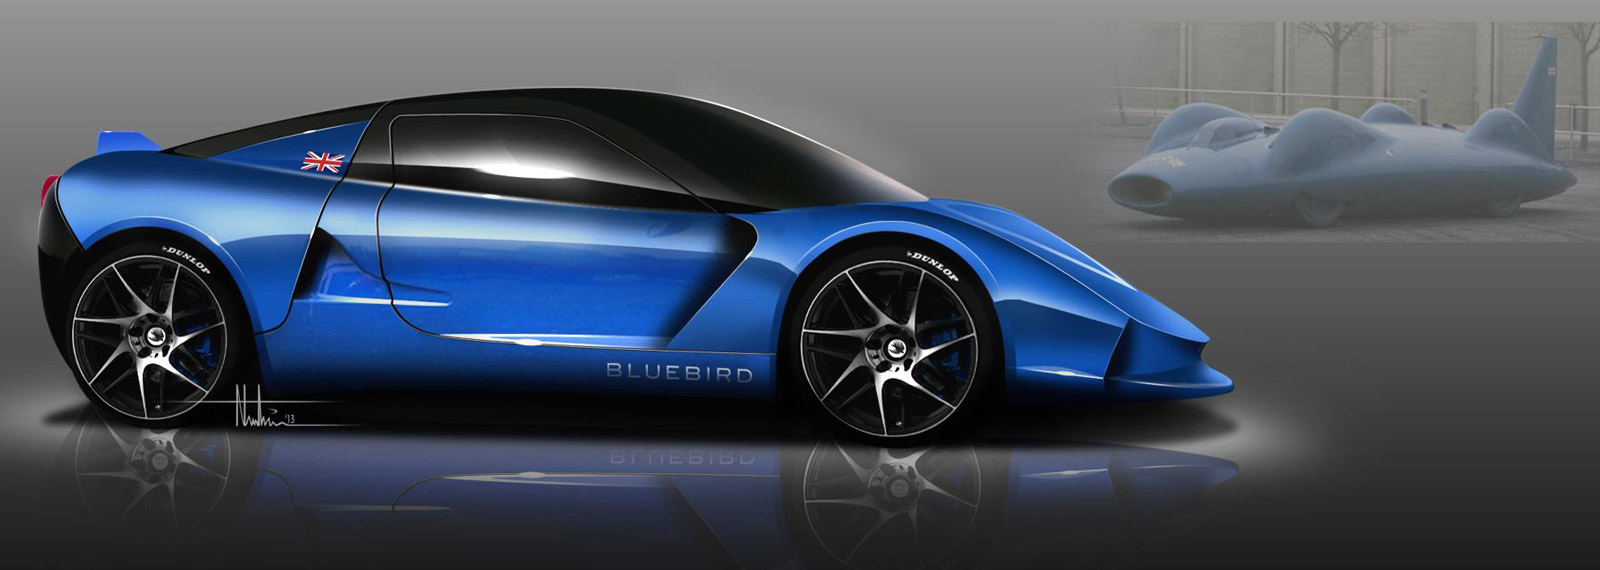 Famous Bluebird Name To Grace New Electric Sports Car